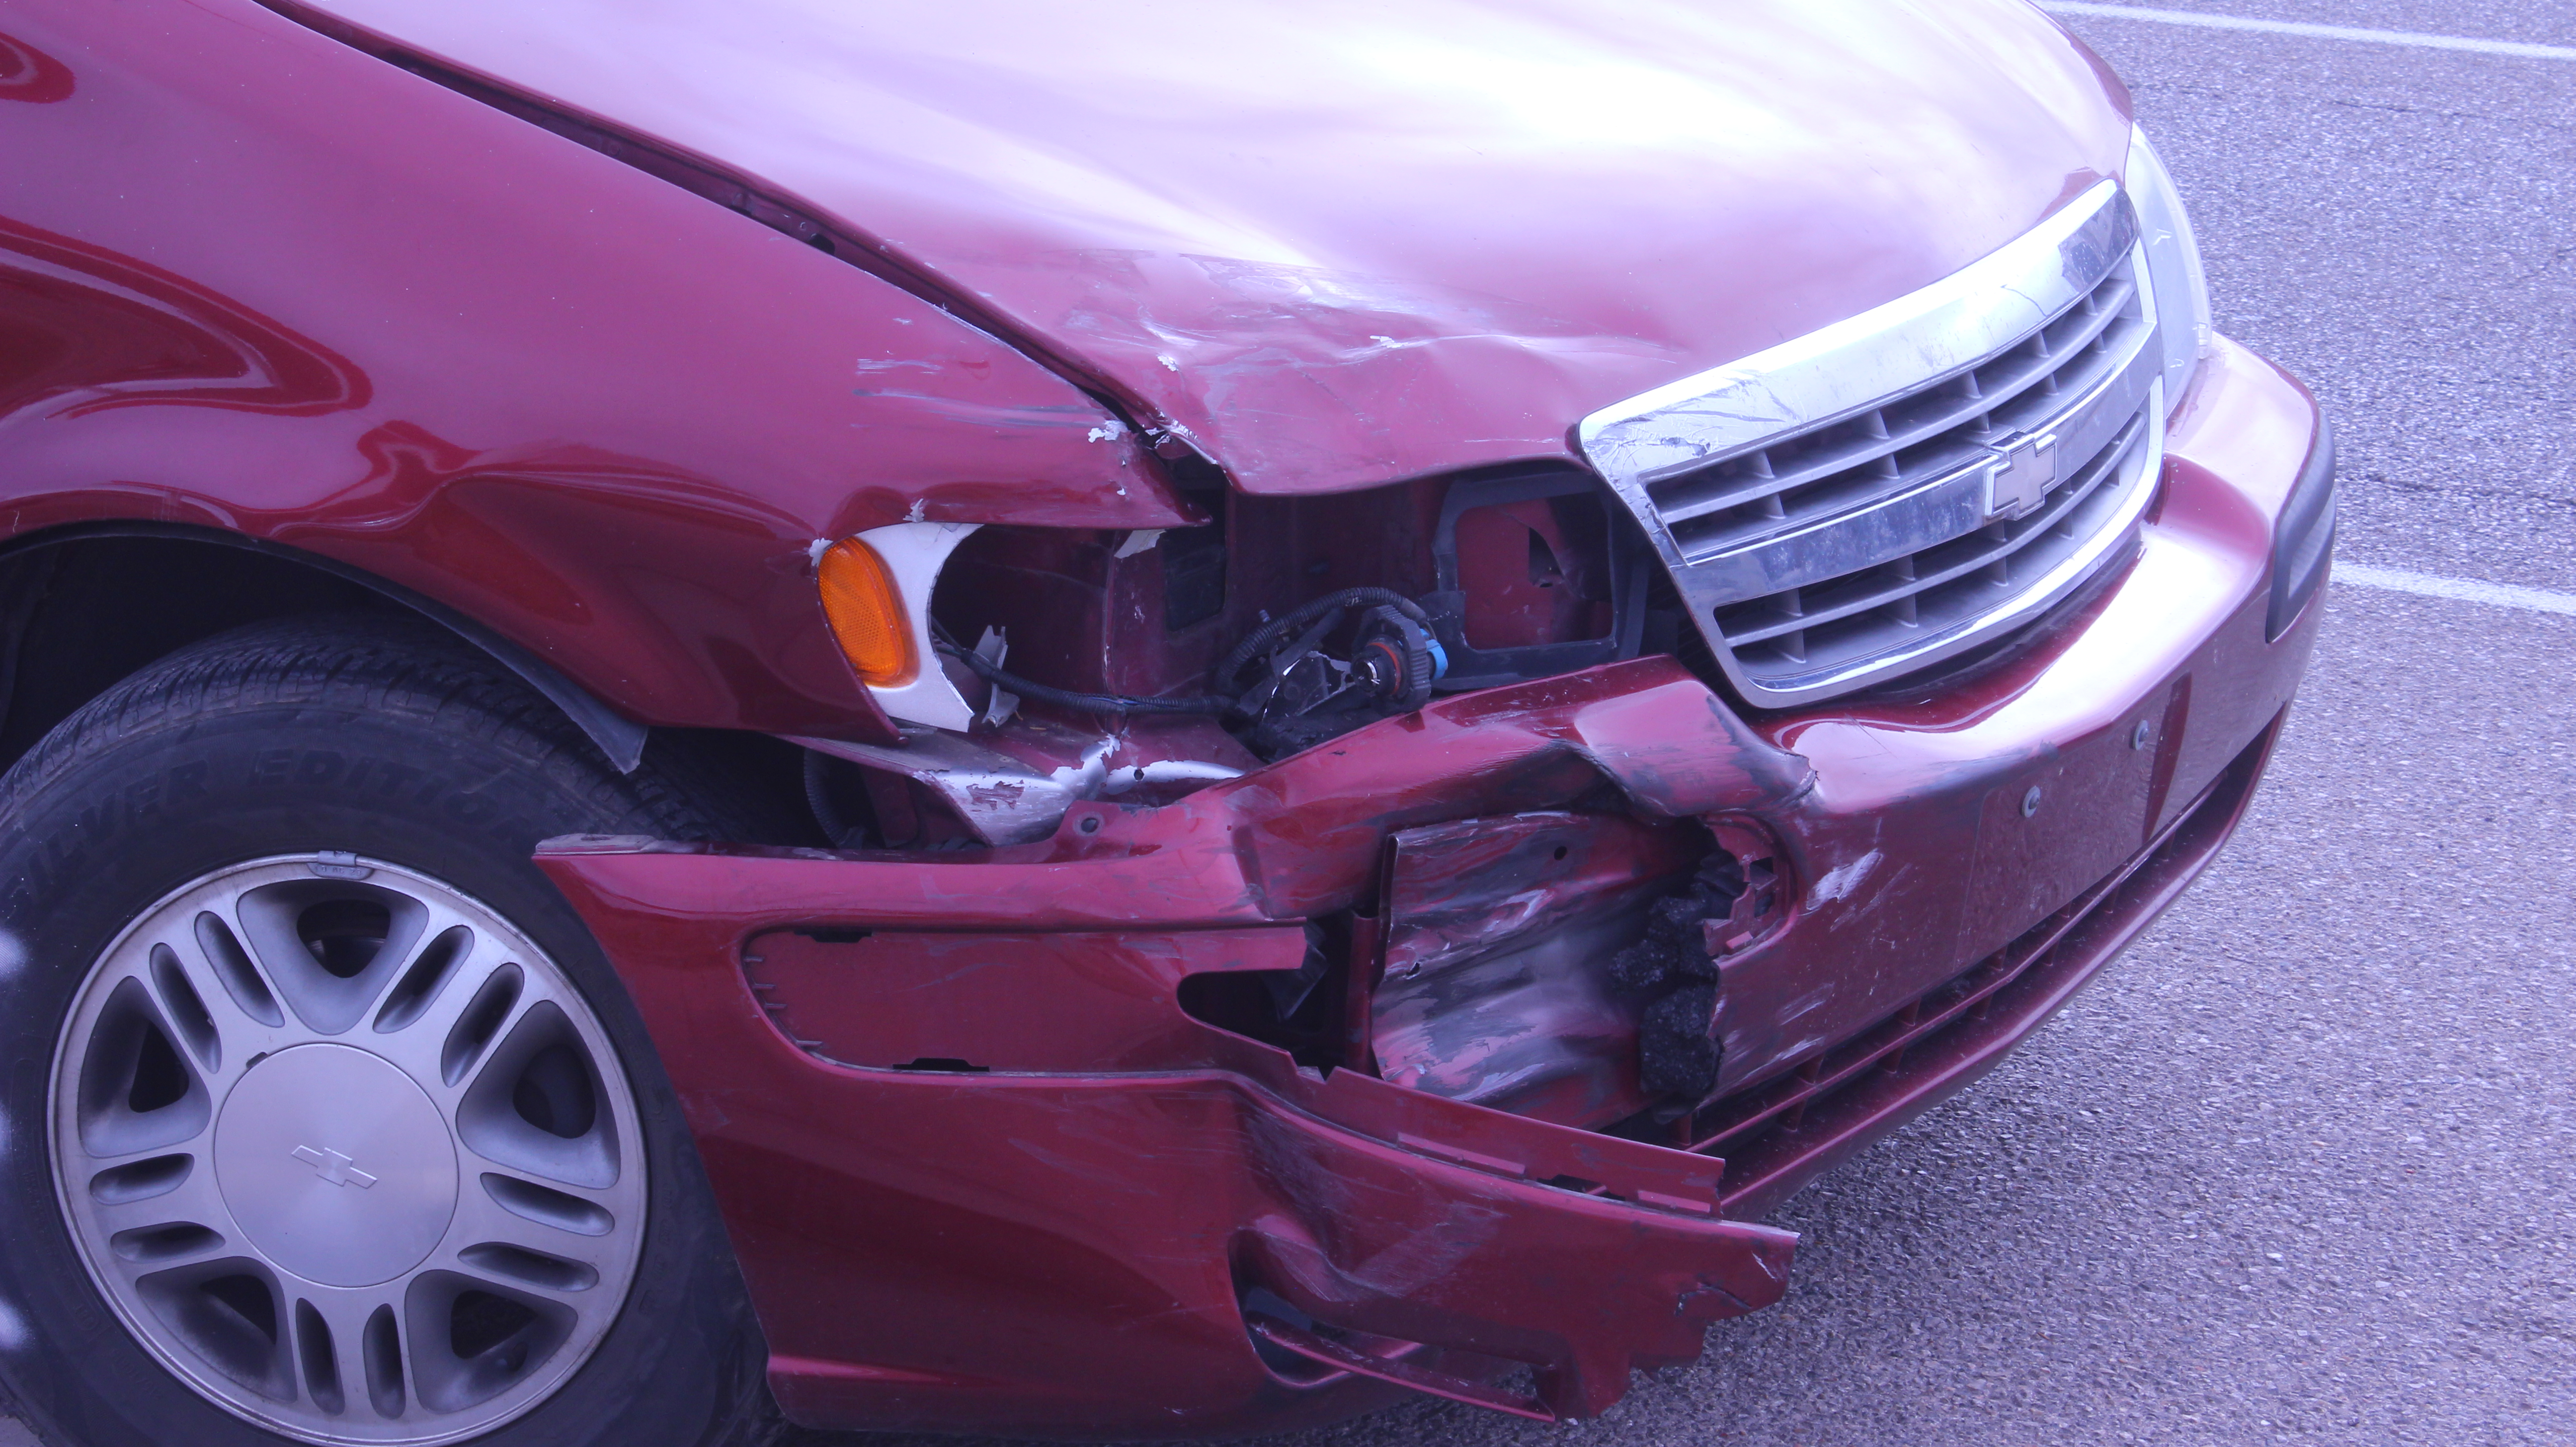 Closeup of the damage sustained by a maroon Chevy Venture minivan in a two-vehicle collision on State Street in Hurricane, Utah, Jan. 18, 2016. | Photo by Don Gilman, St. George News